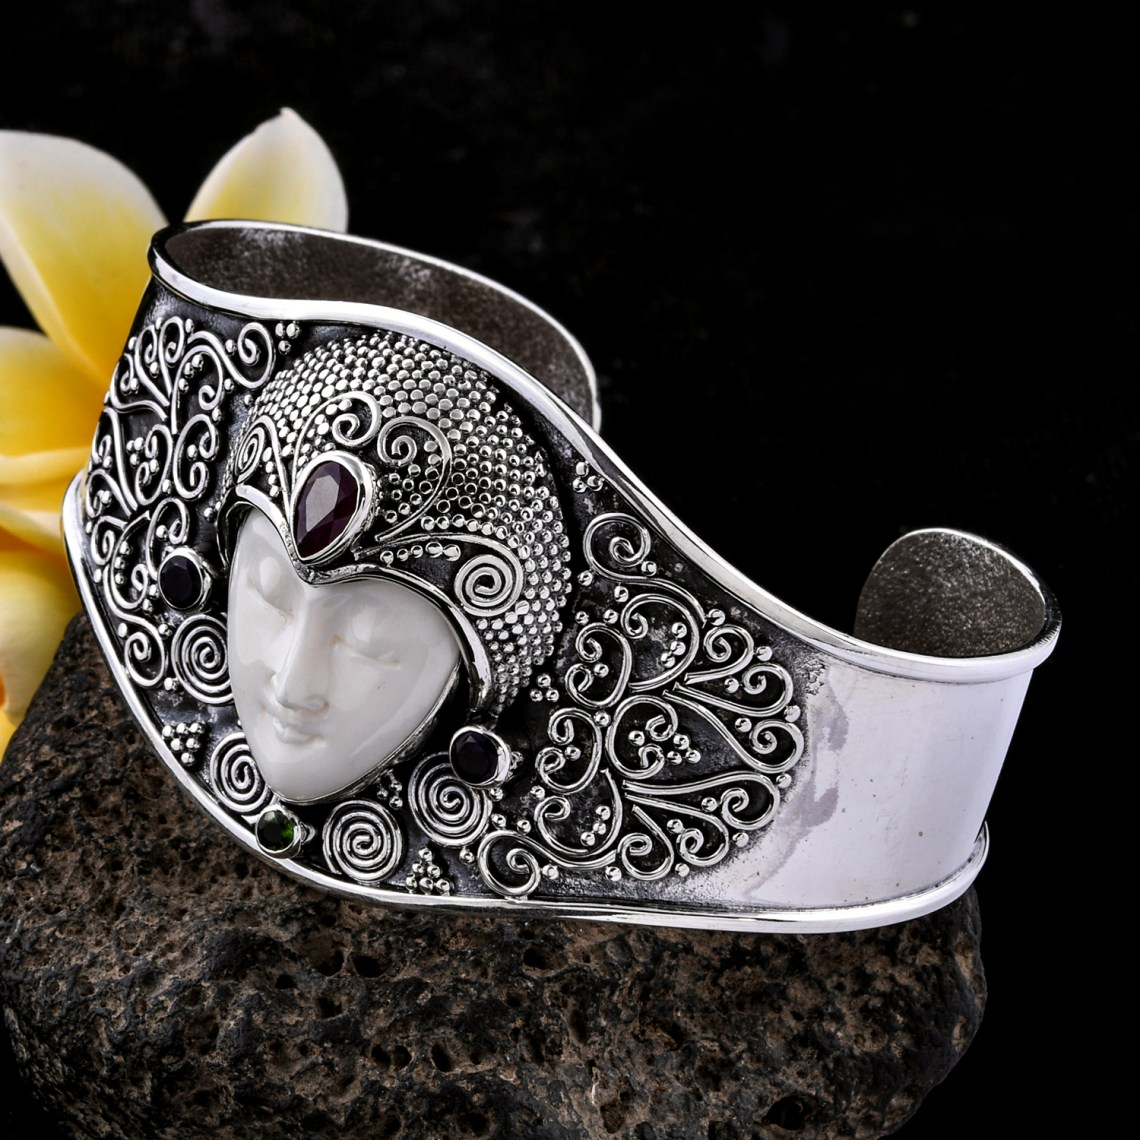 Cuff bangle hand-crafted in the Bali jewelry style.